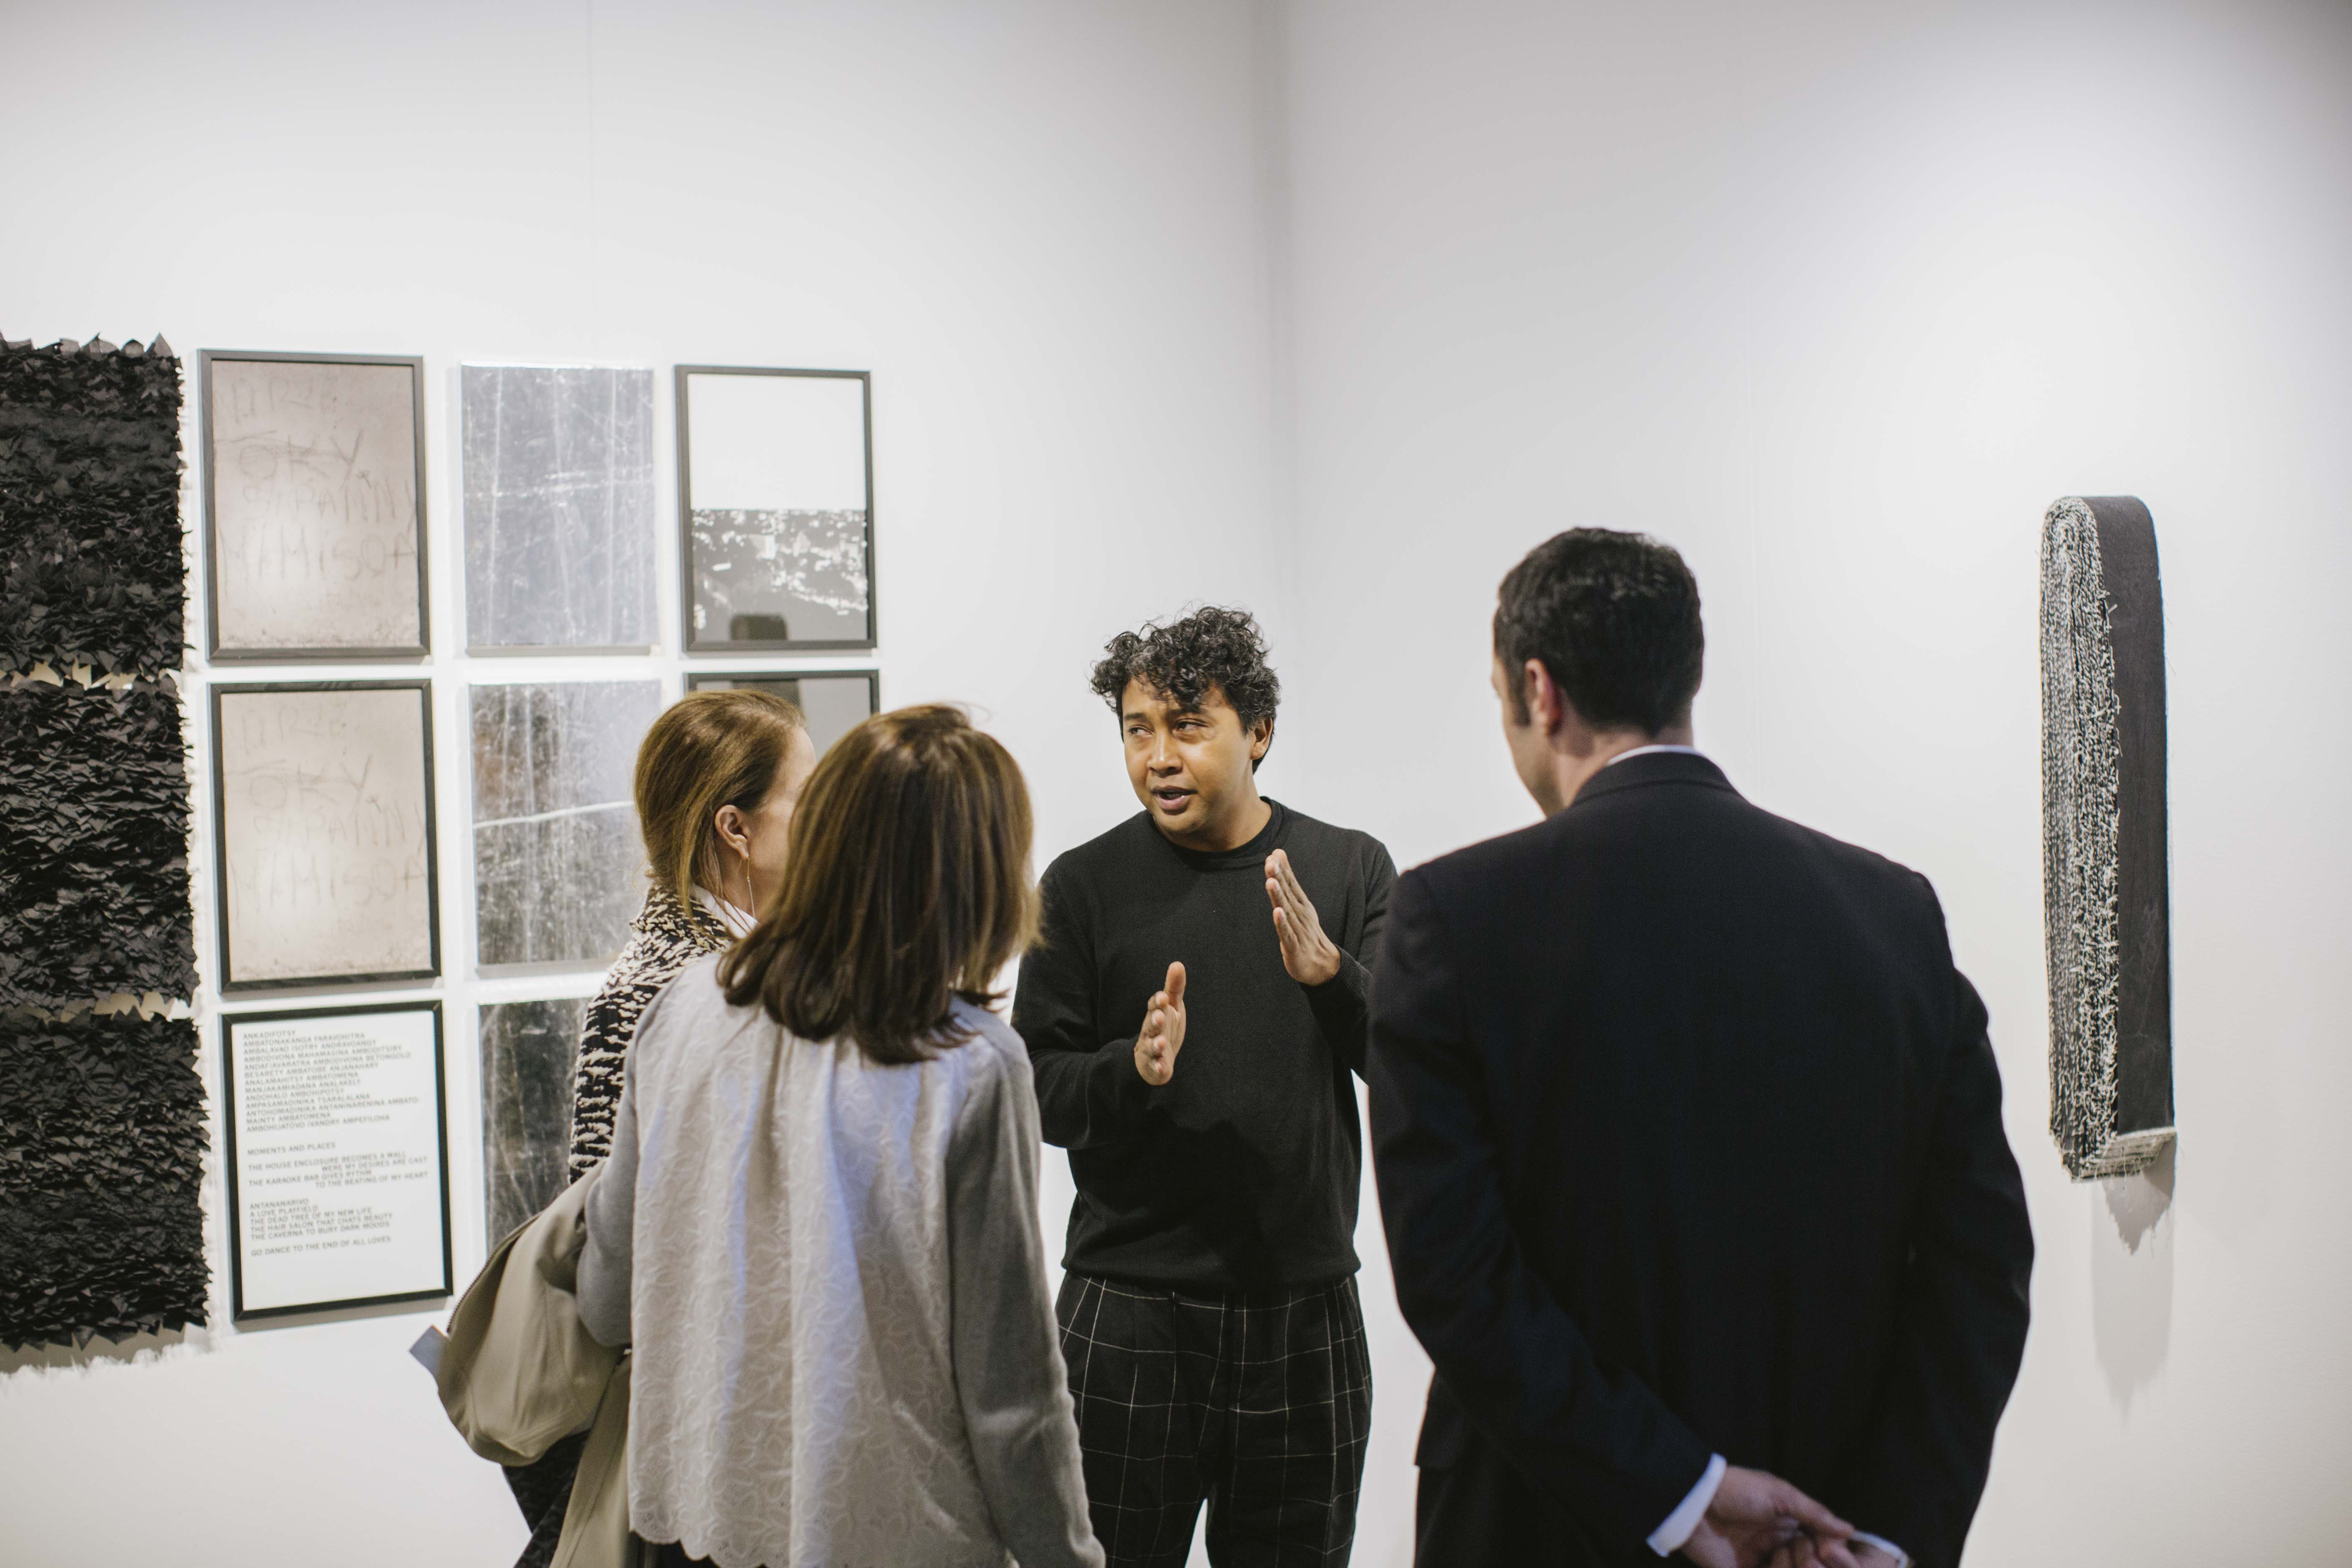 Joël Andrianomearisao, Sabrina Amrani Gallery, Madrid, Spain, at 1:54 New York 2016 © Katrina Sorrentino